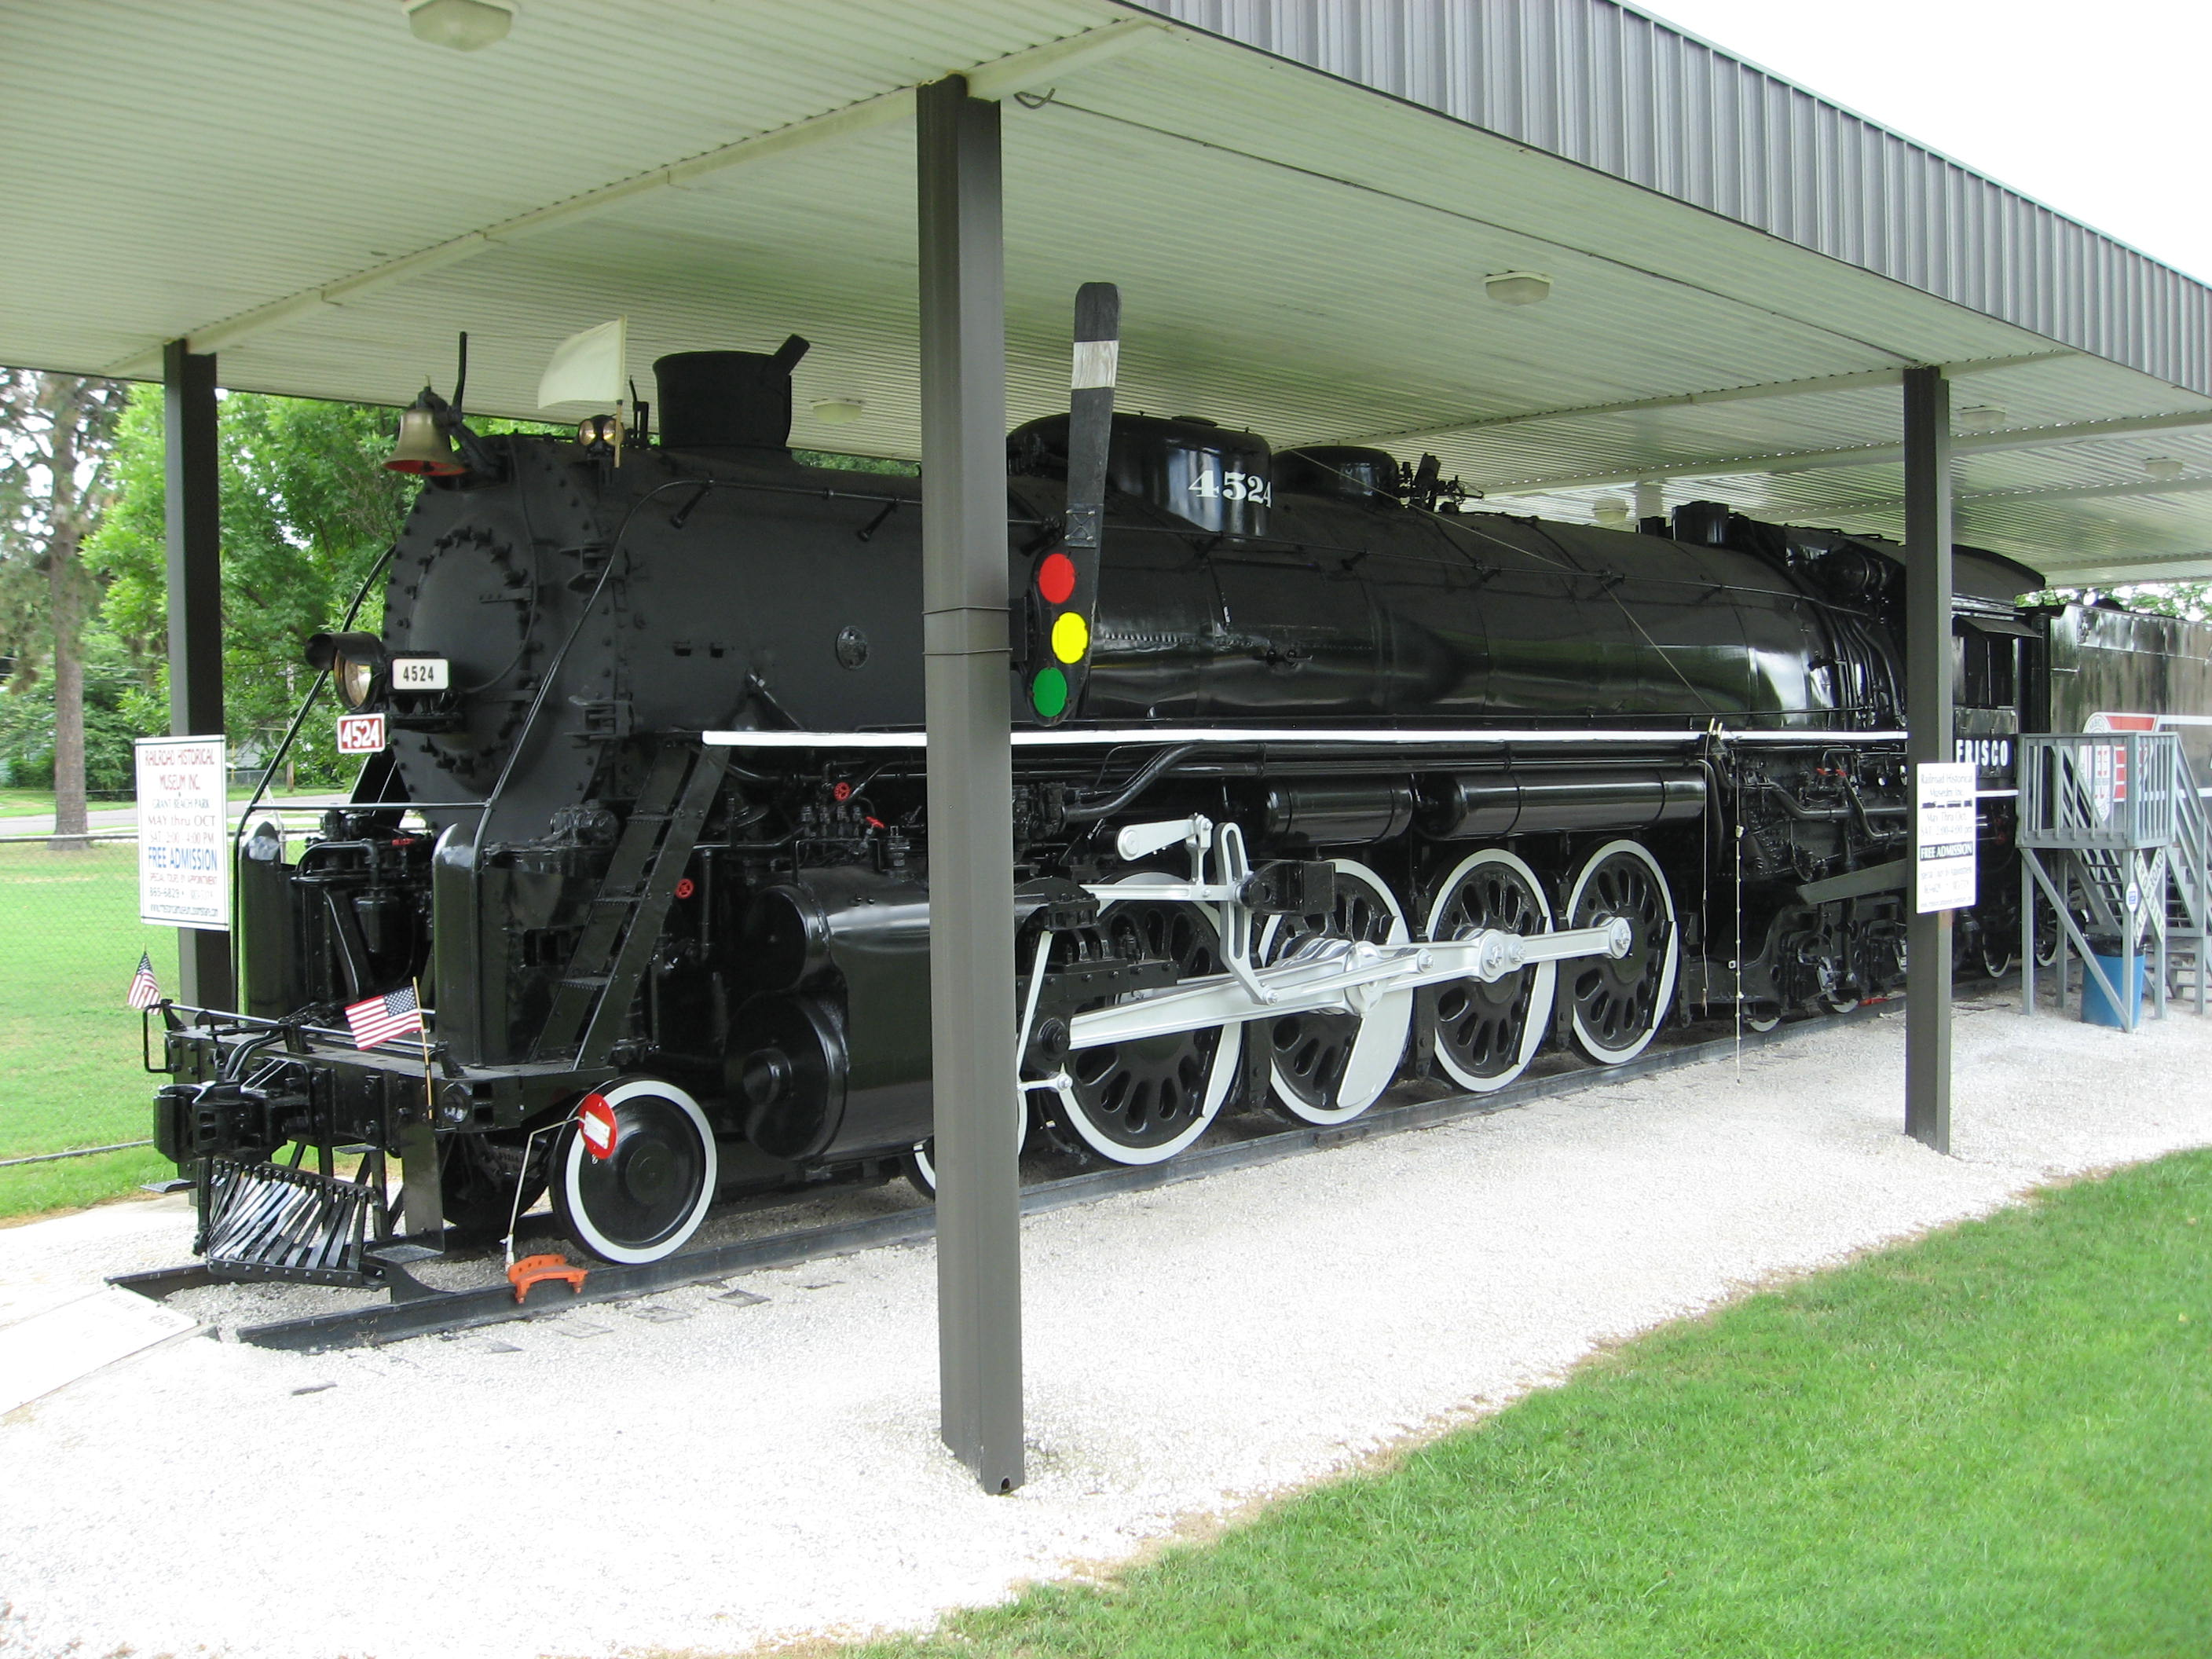 The St. Louis San-Francisco Locomotive No.4524 is the first one of the four train cars